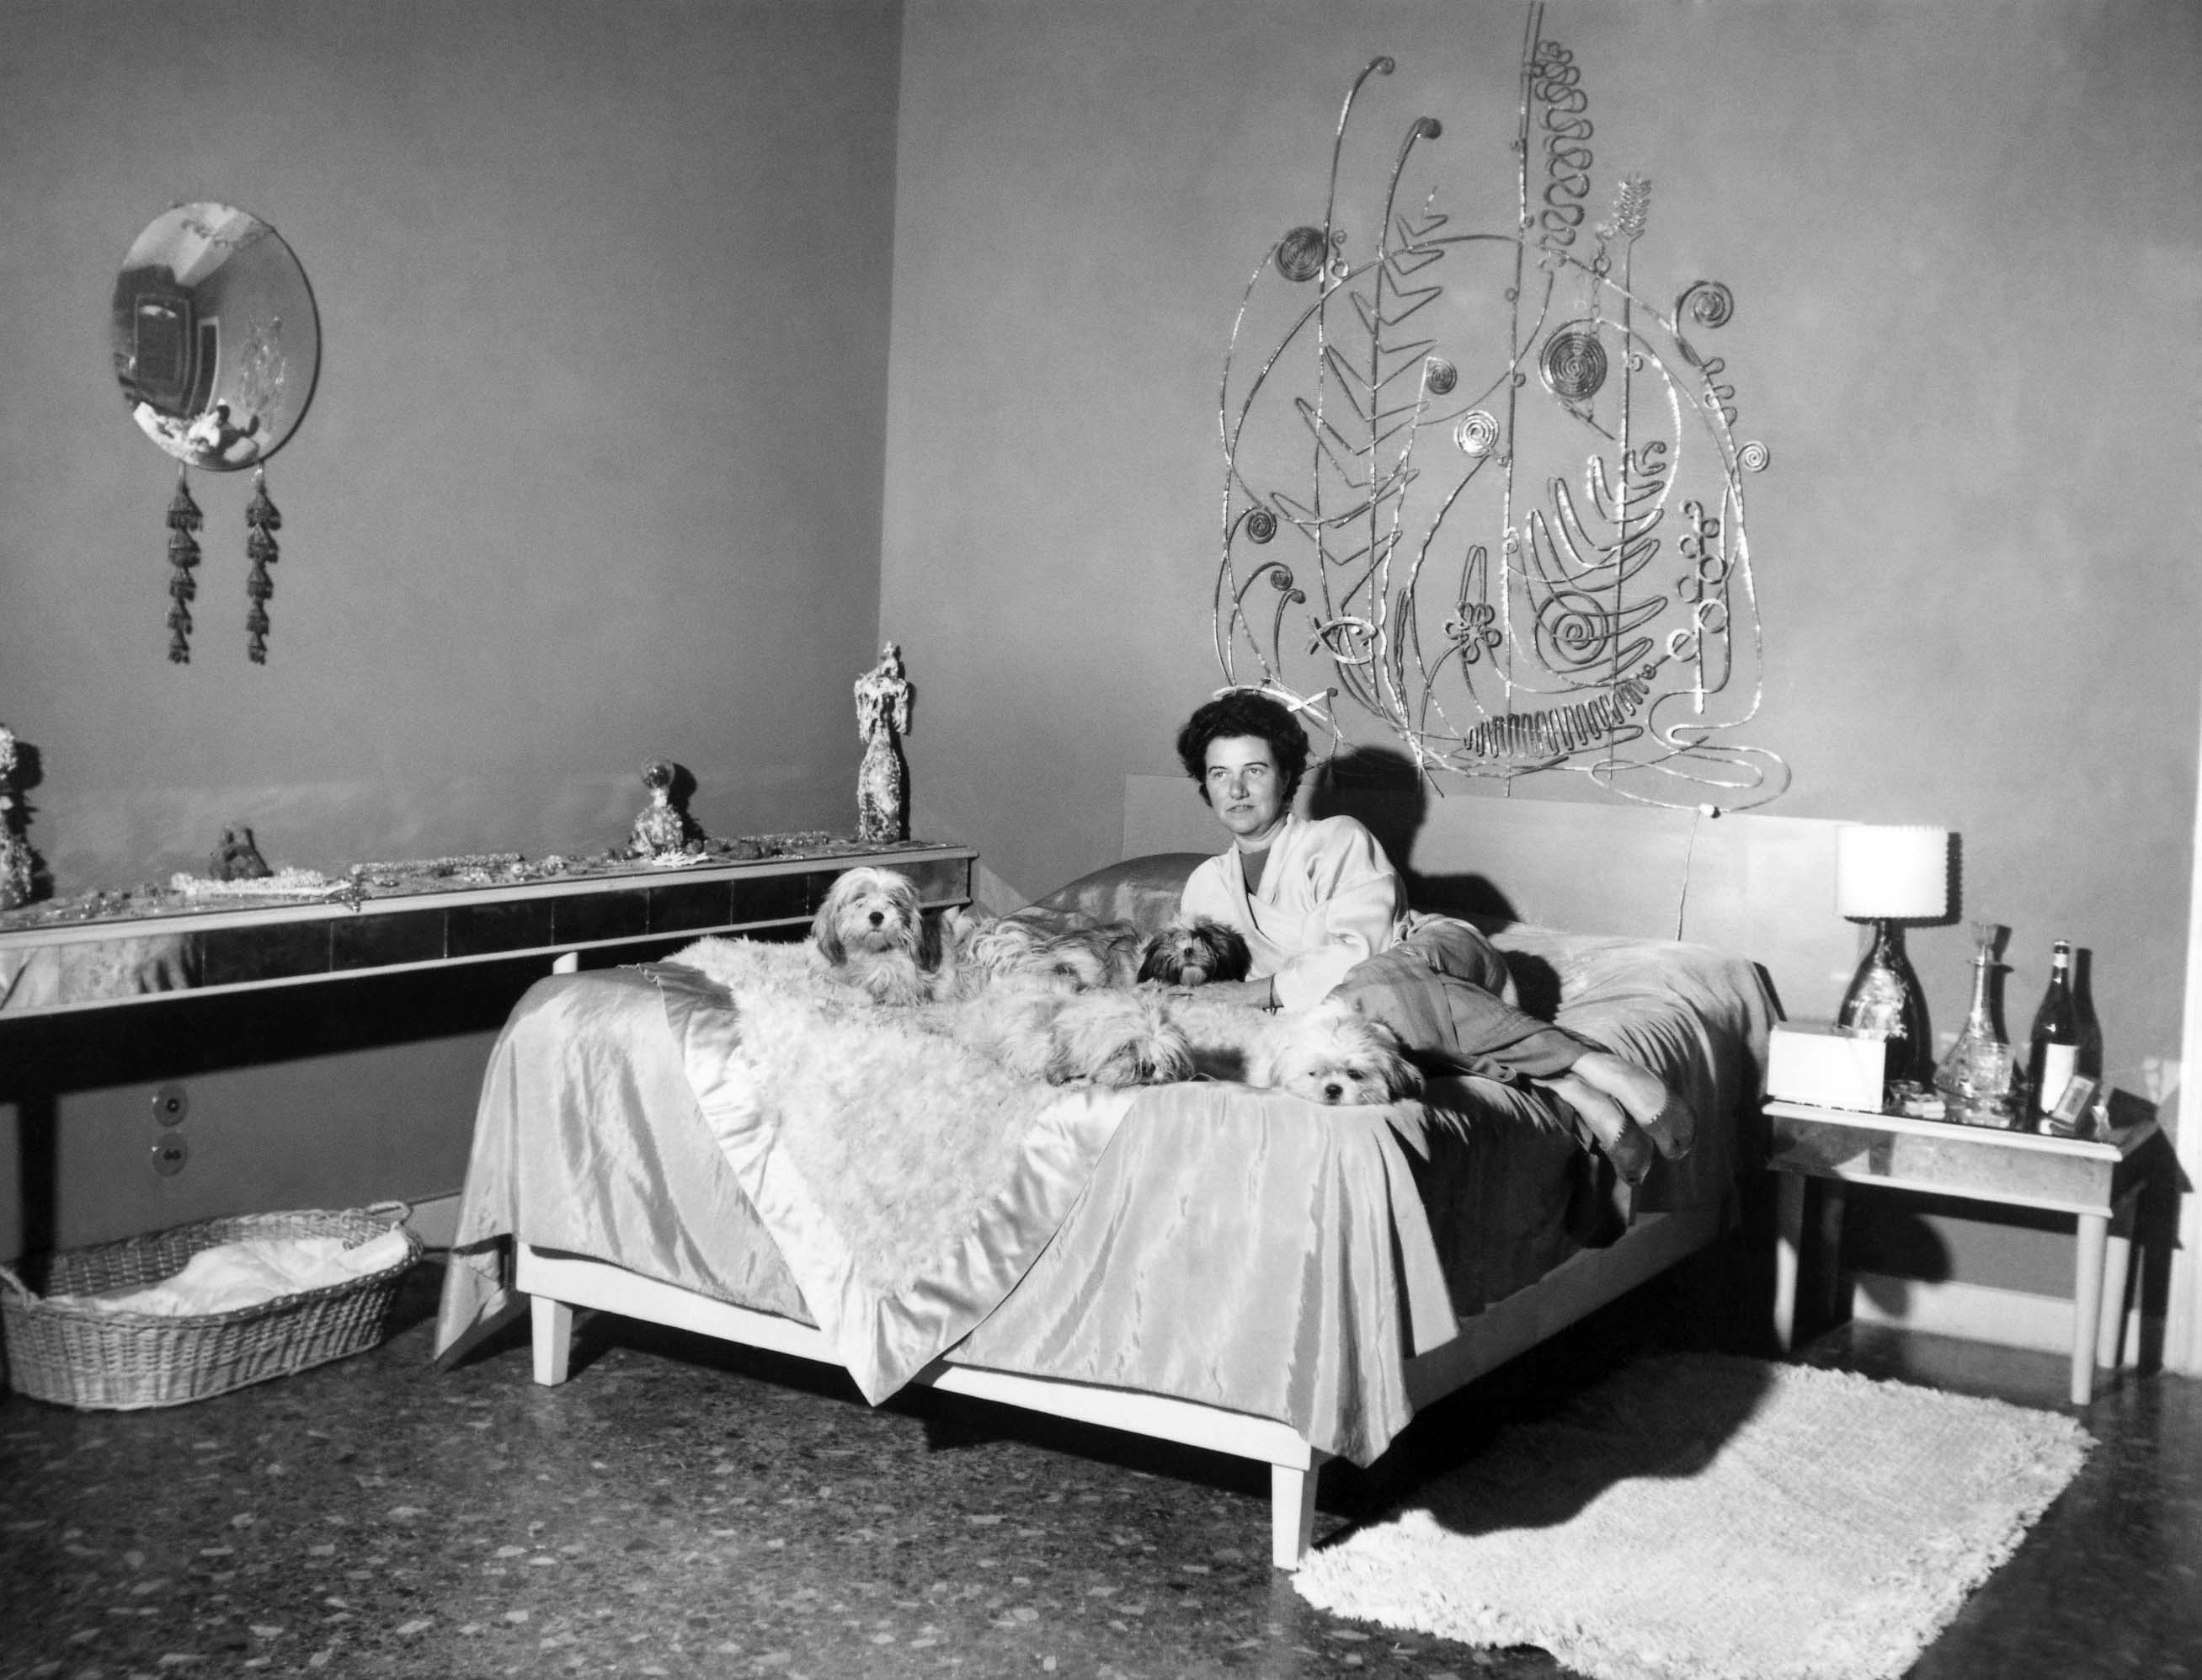 Peggy Guggenheim seated on a bed with a dog.